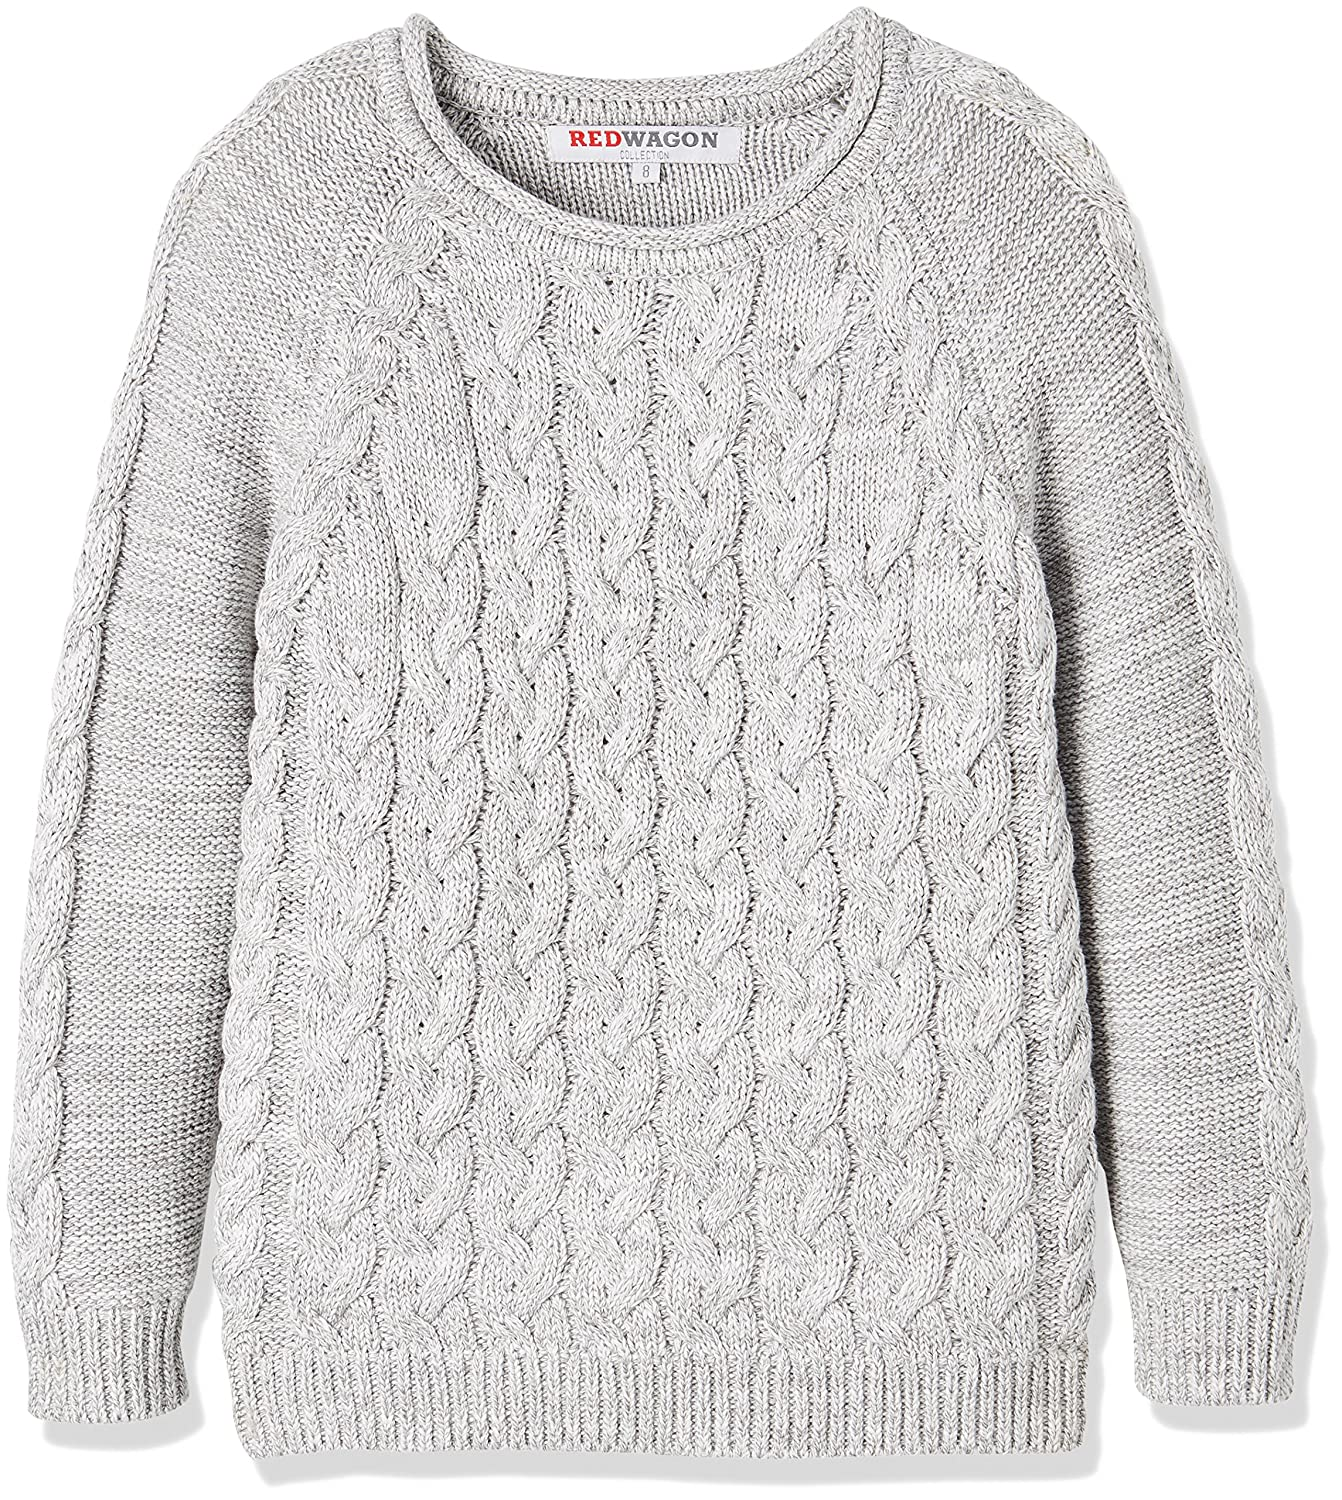 RED WAGON Boy's Cable Jumper Grey 4 Years 7350